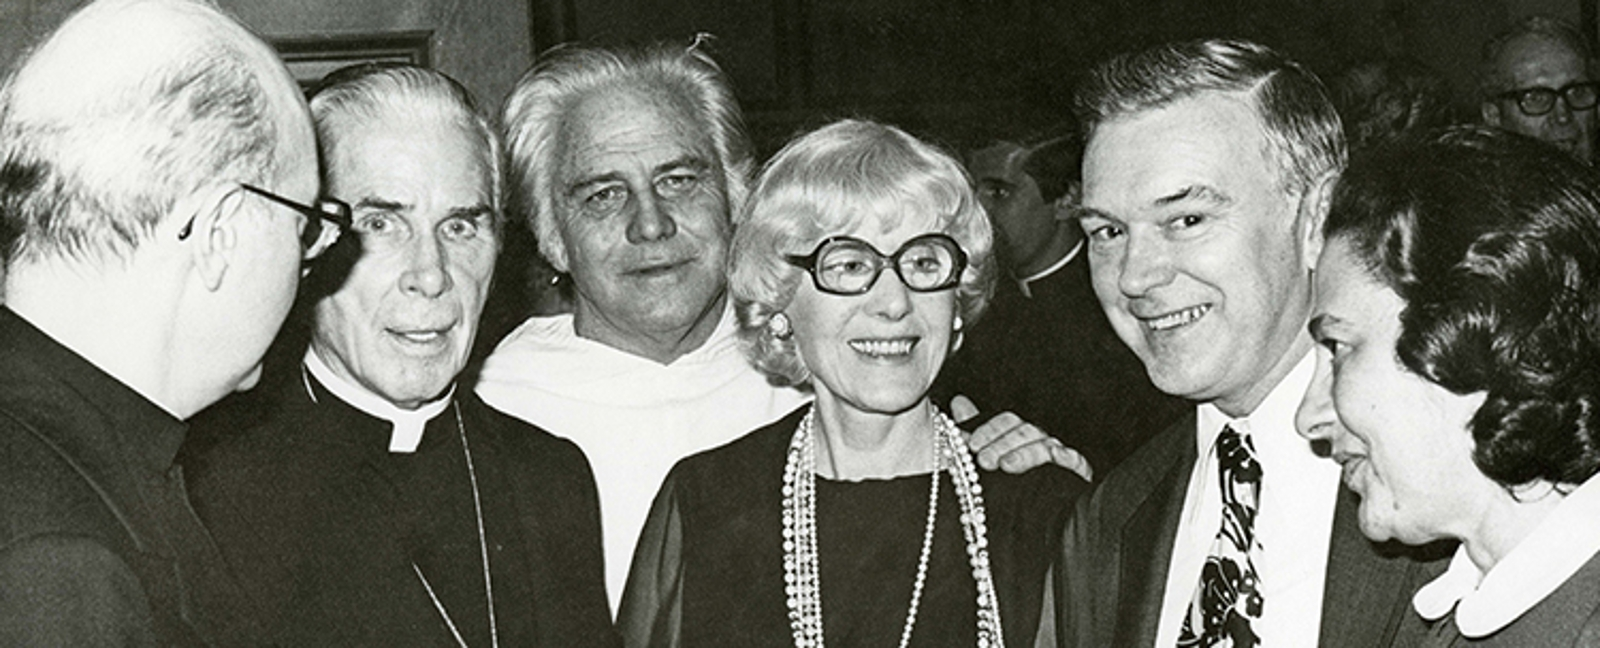 Sheen with Rev. Gilbert Hartke, O.P., Clare Boothe Luce, and University President Clarence C. Walton